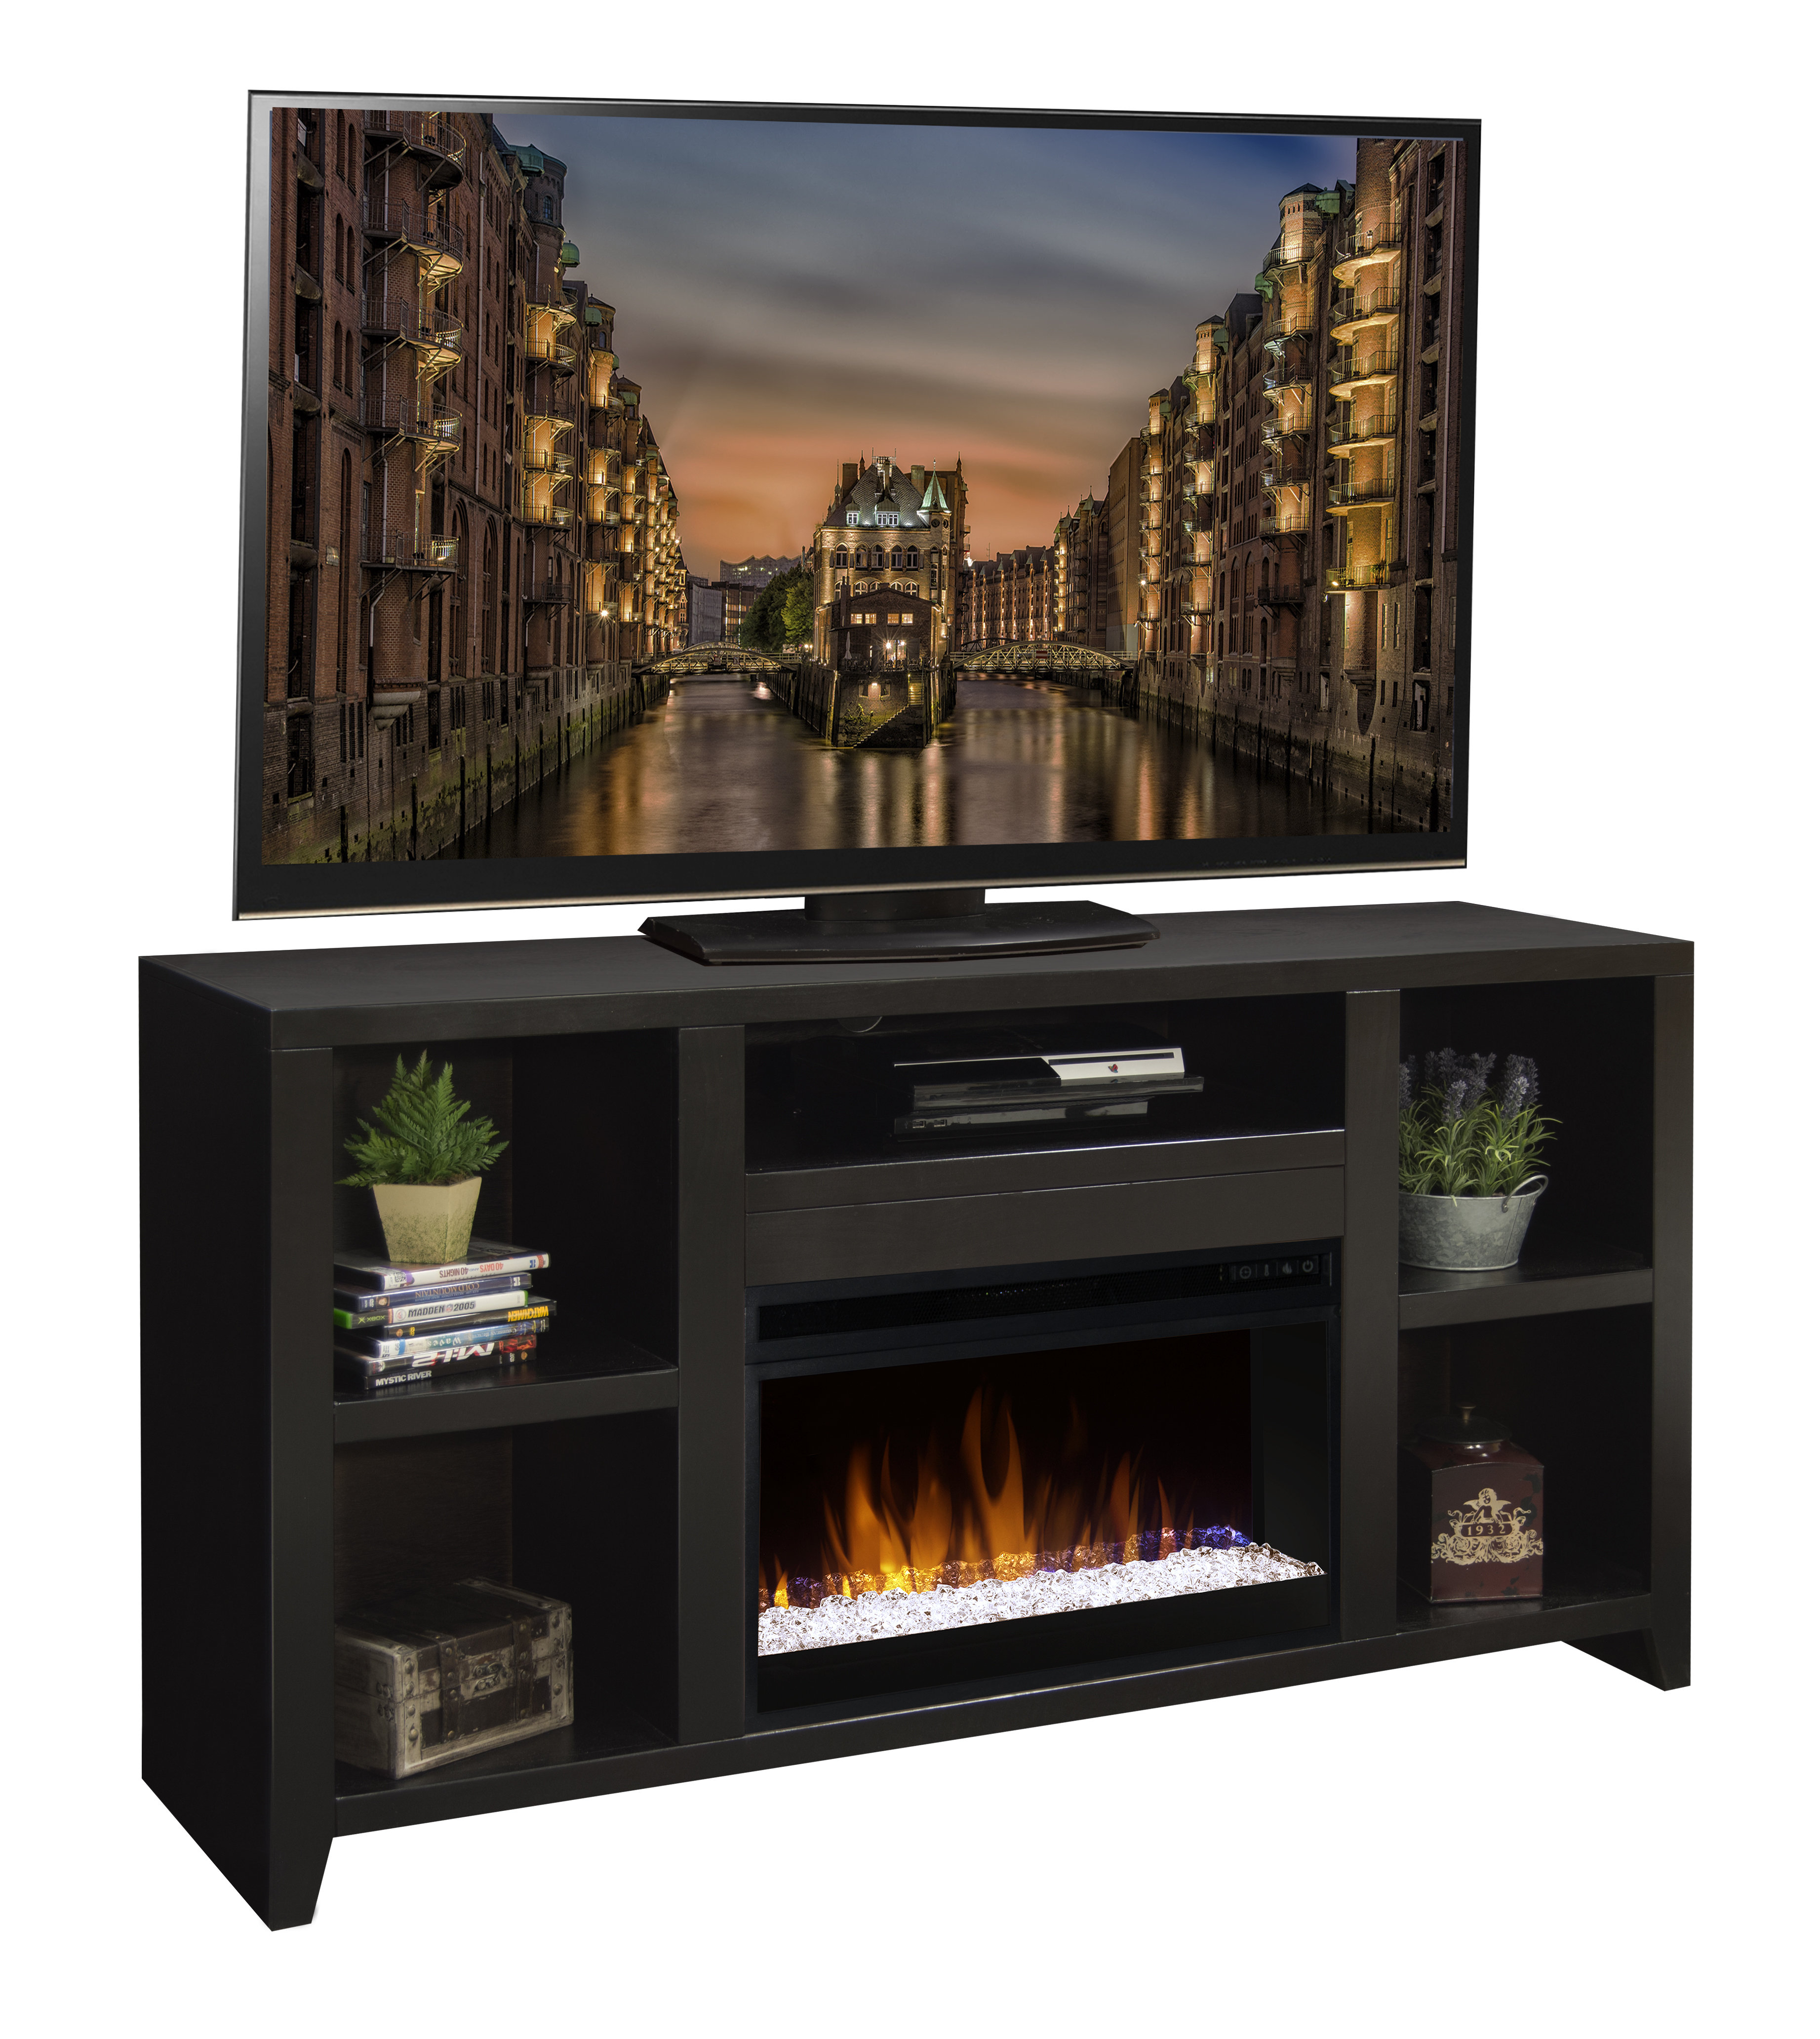 60-69 Inch Tv Stand Fireplaces You'll Love | Wayfair pertaining to Caden 63 Inch Tv Stands (Image 2 of 30)